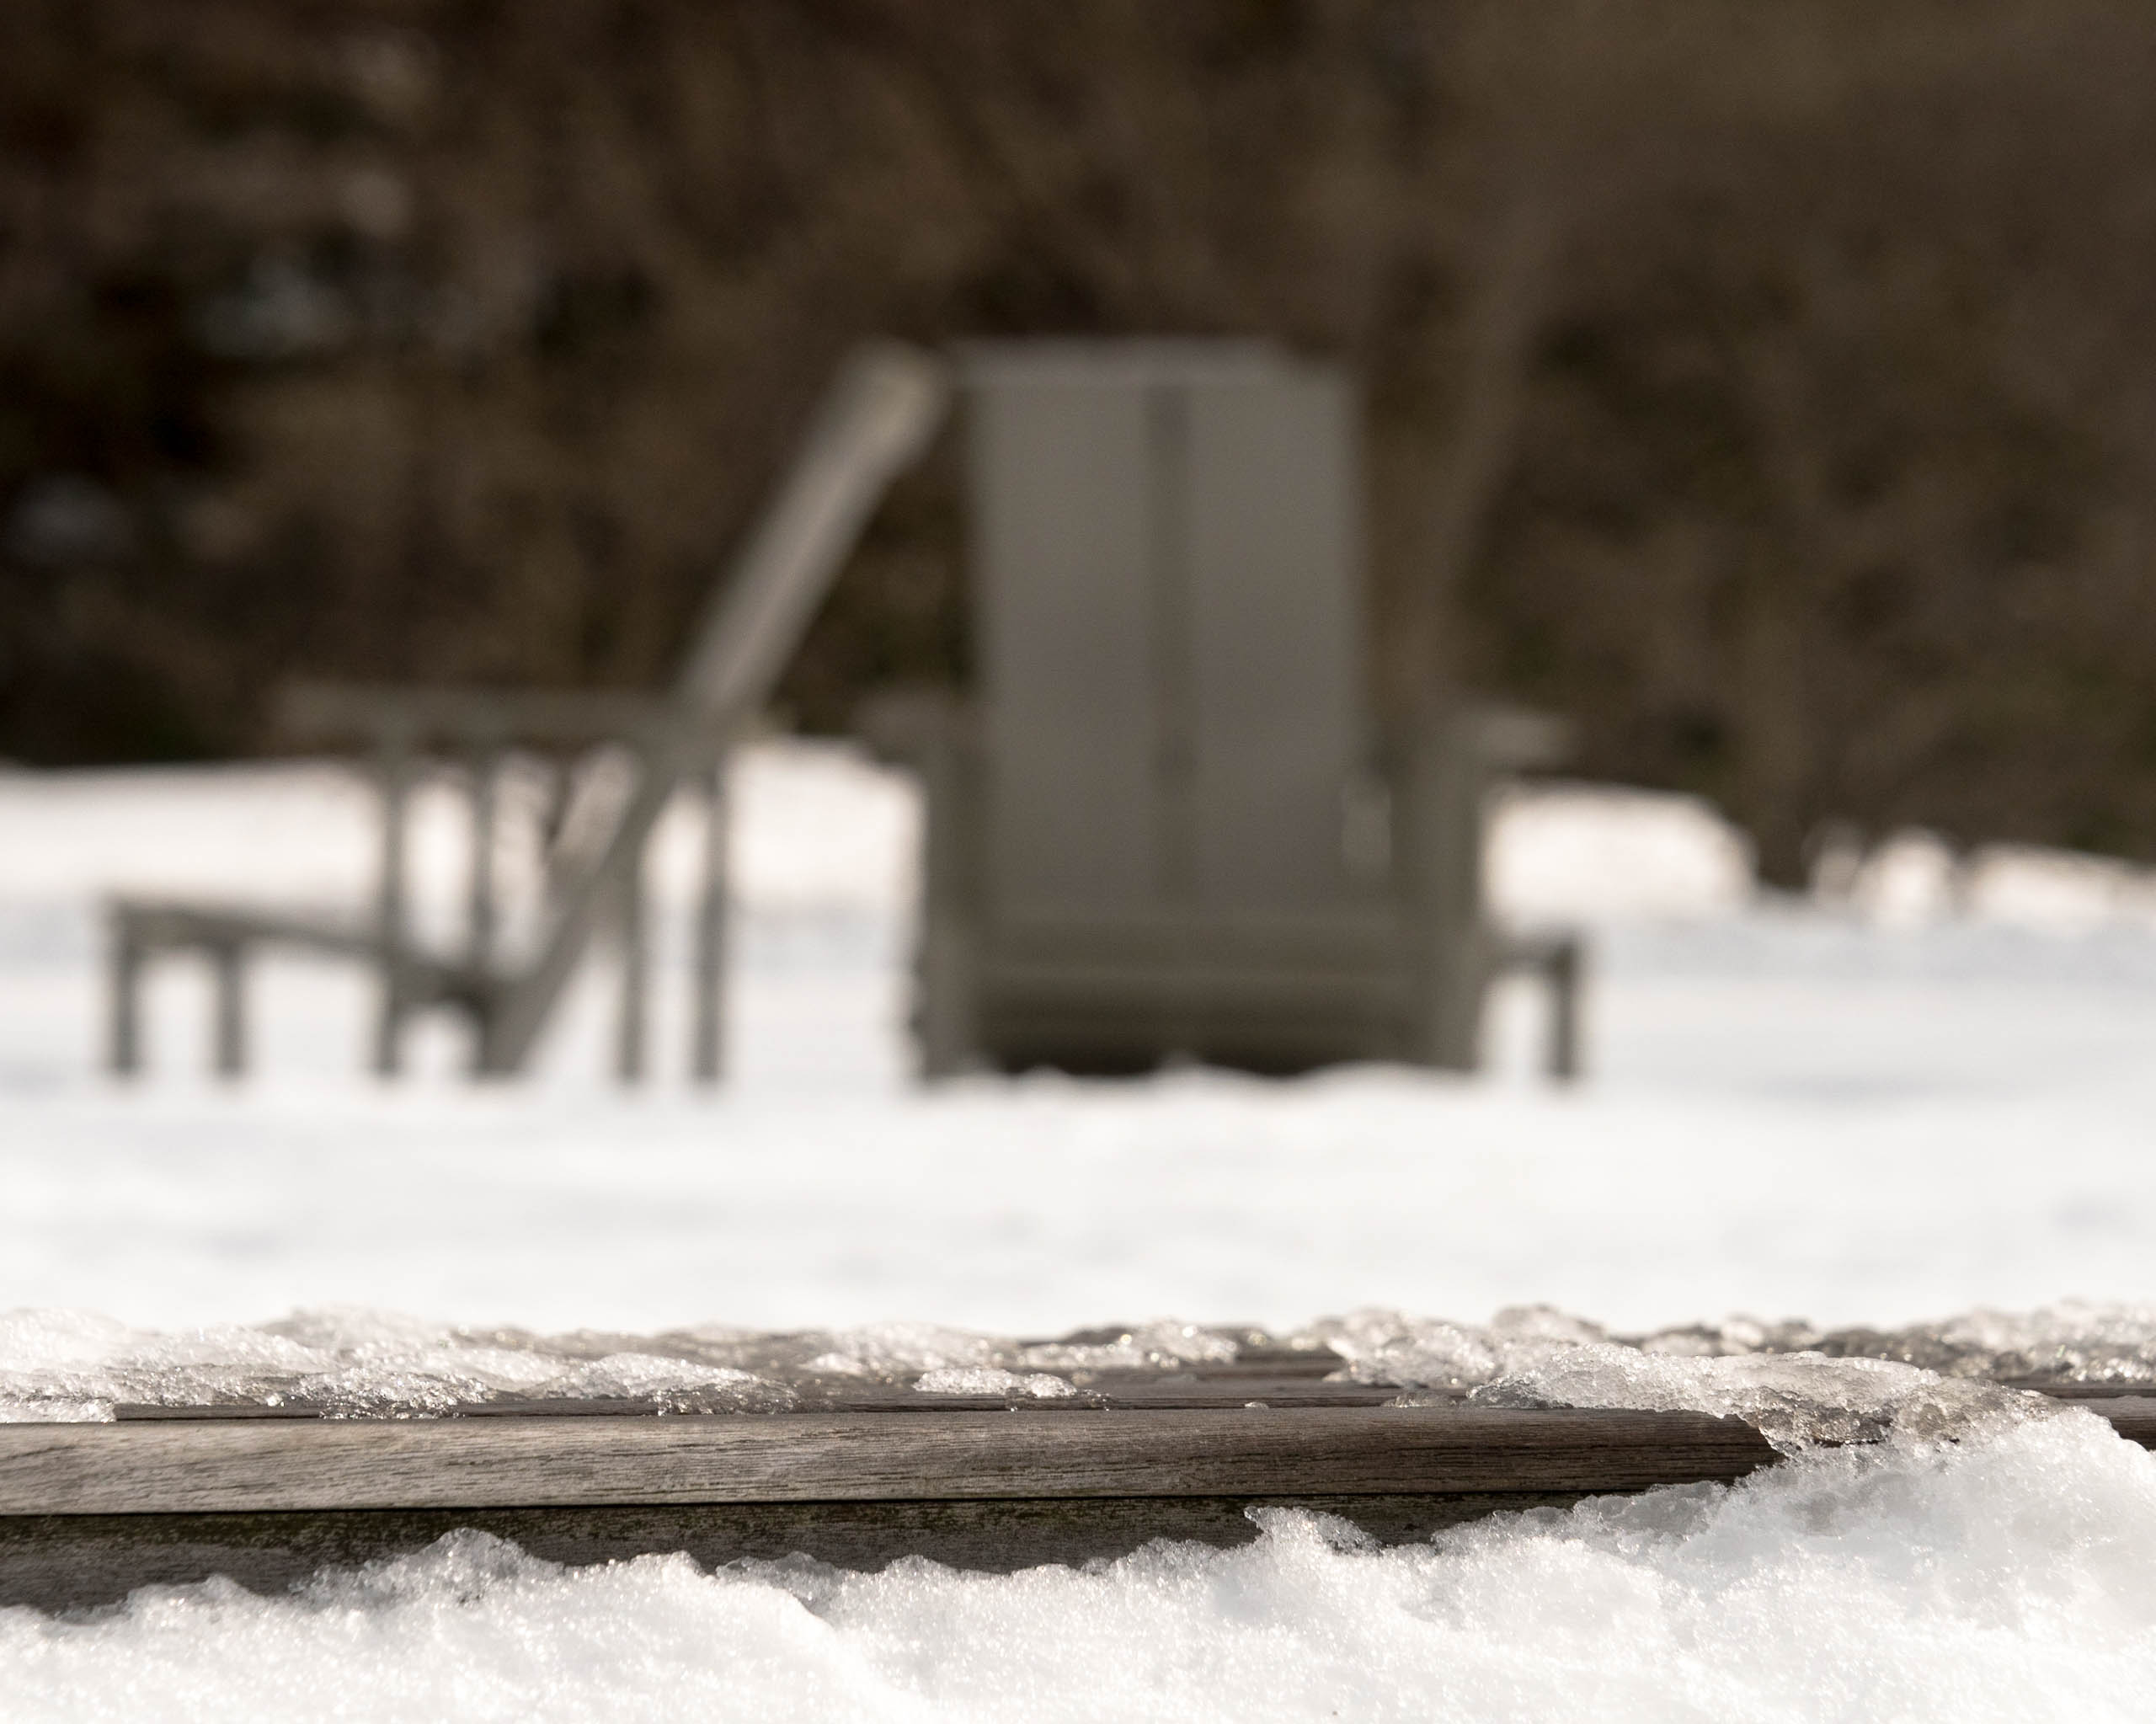 Wave_Hill_bench_in_snow_with_three_chairs-1